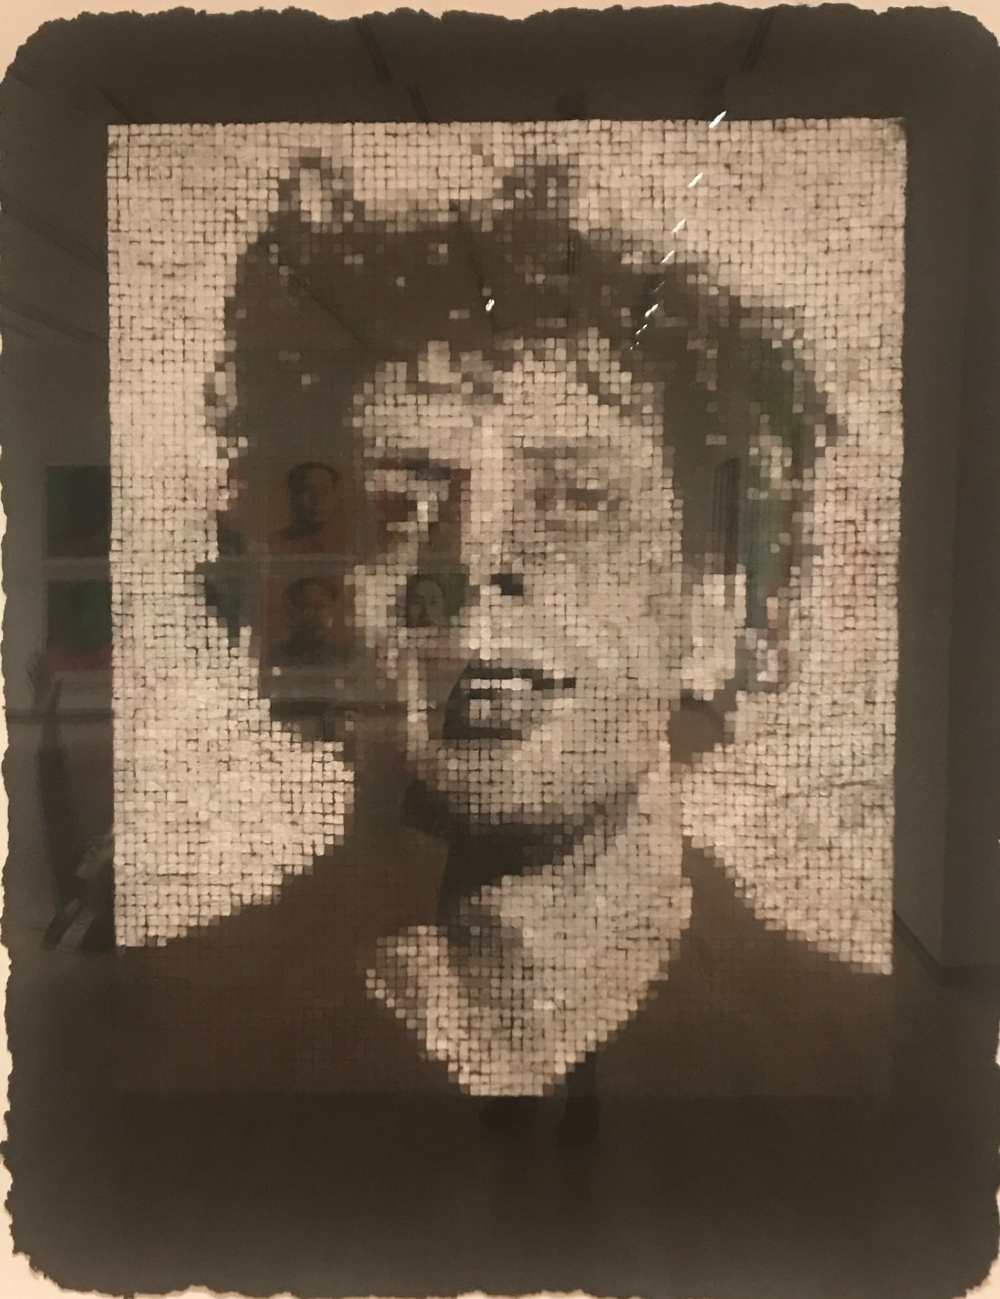 phil_iii_by_chuck_close